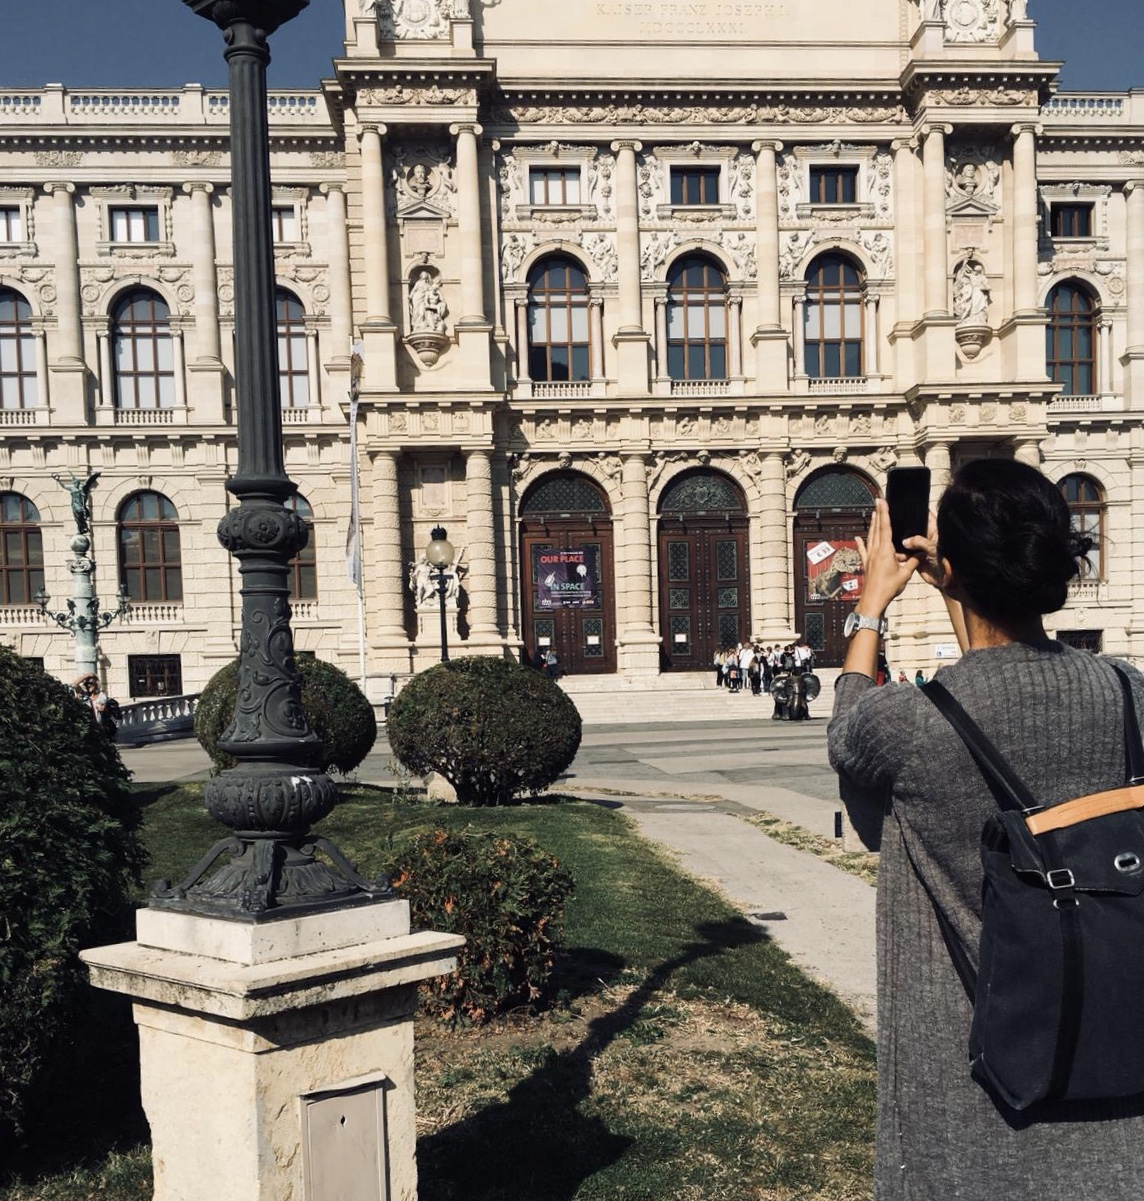 Nationalhistorisches Museum Wien